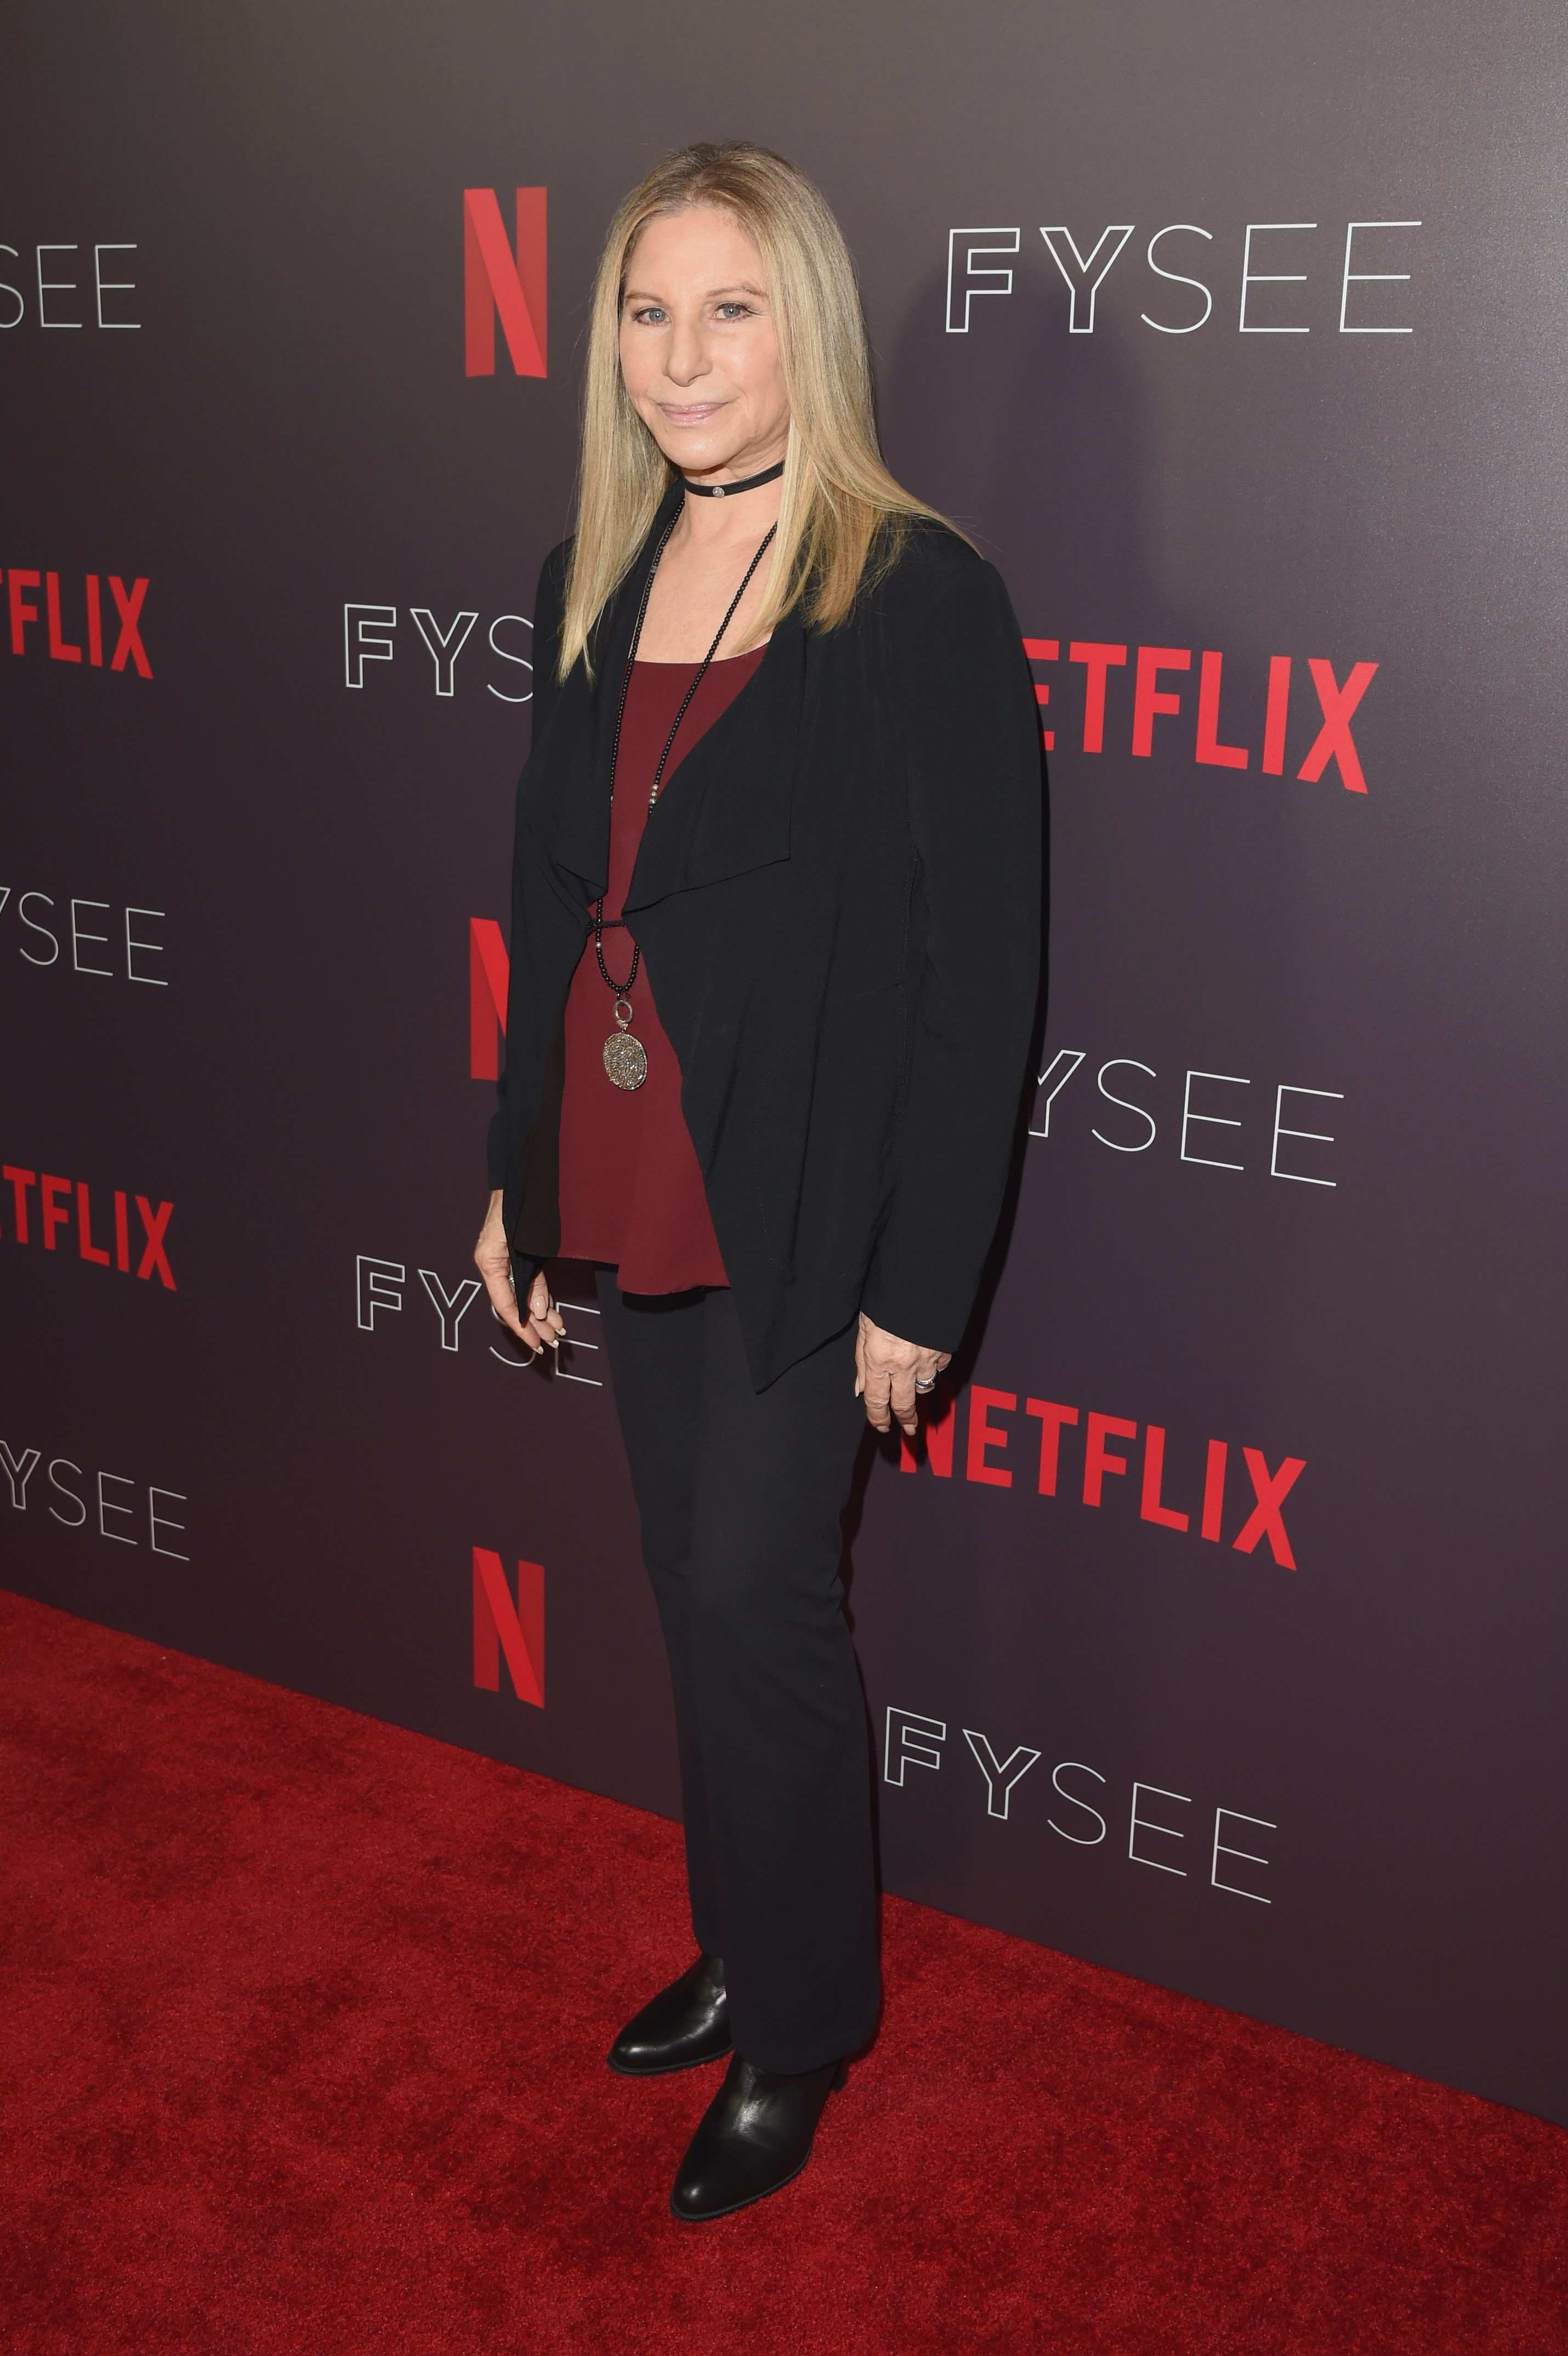 Barbra Streisand attends the Netflix #FYSee 'Scene Stealers' event | Photo: Getty Images